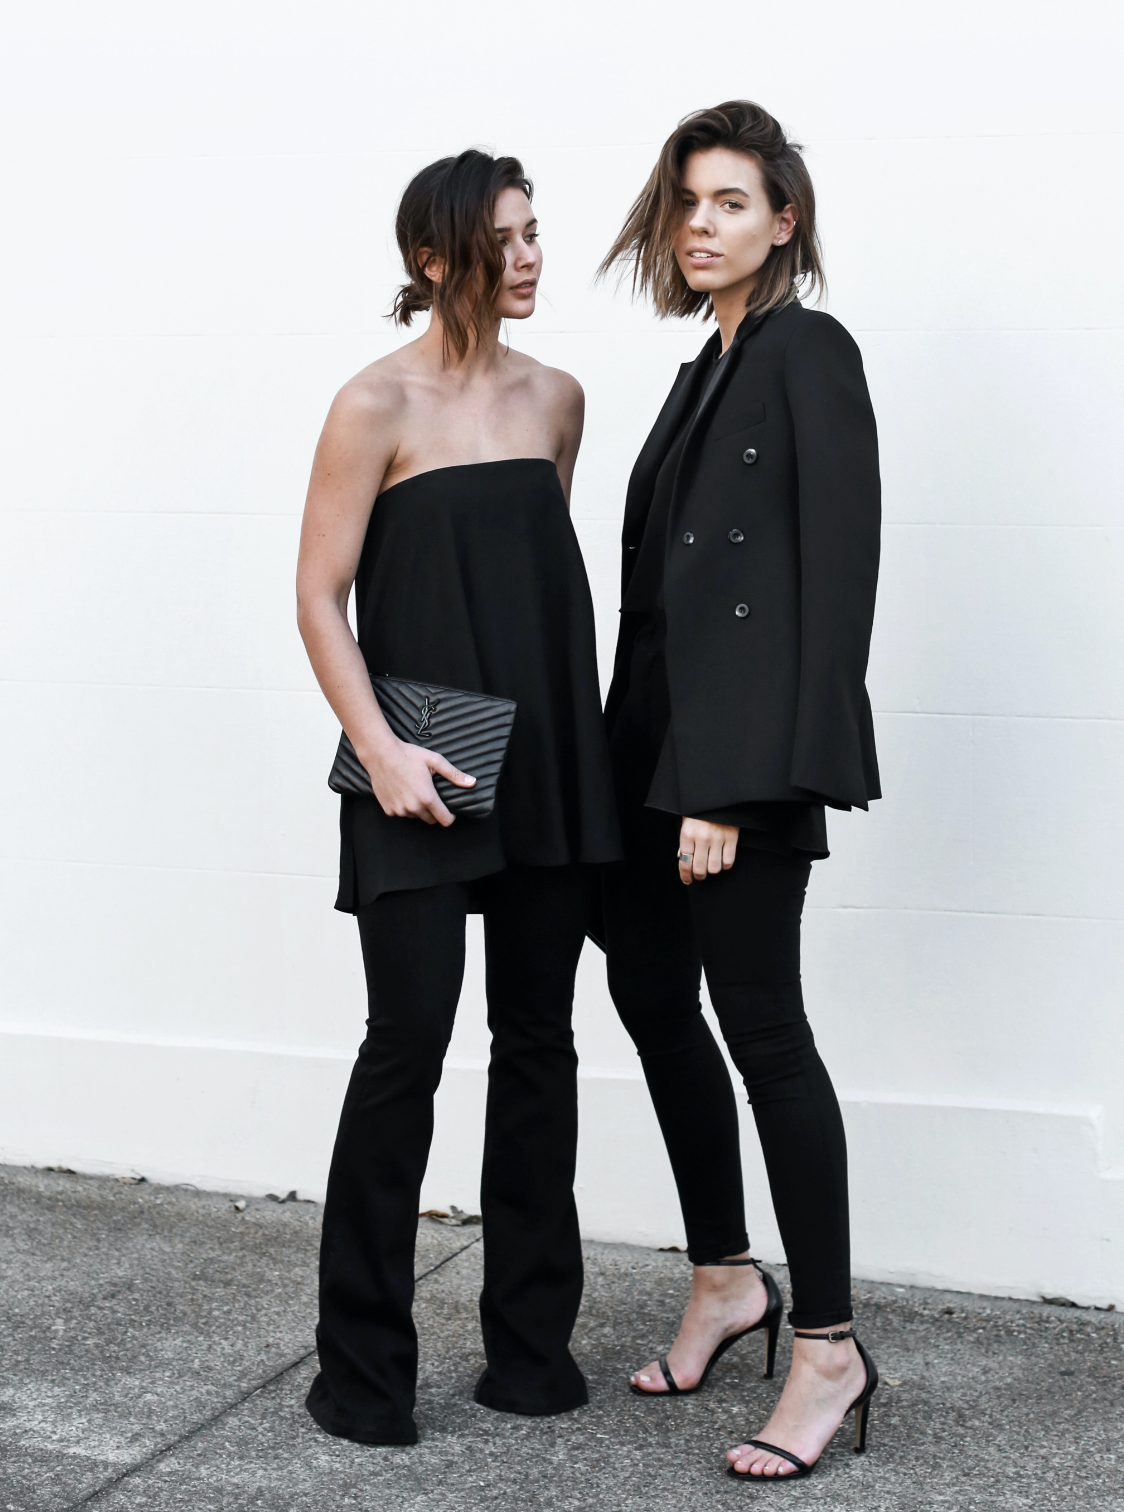 @harperandharley and @kaitymodern get Seriously Black in our new luxuriously comfortable, fade resistant collection. #LittleBlackJean